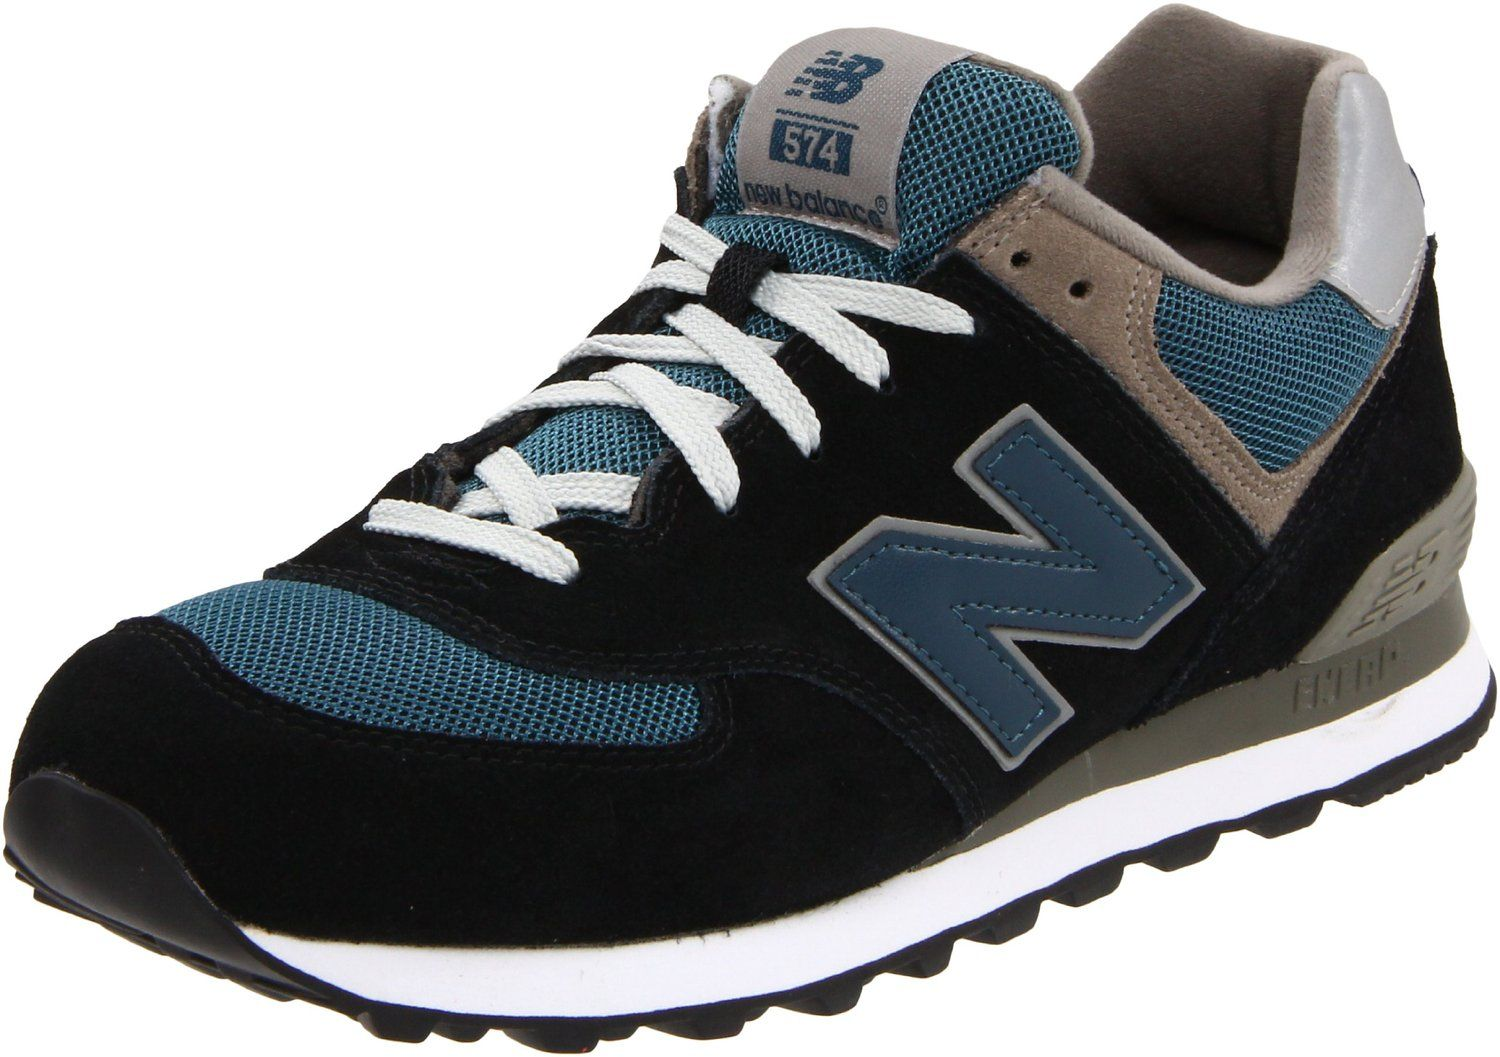 MADE IN USA New Balance Men's Grey M574 10 D